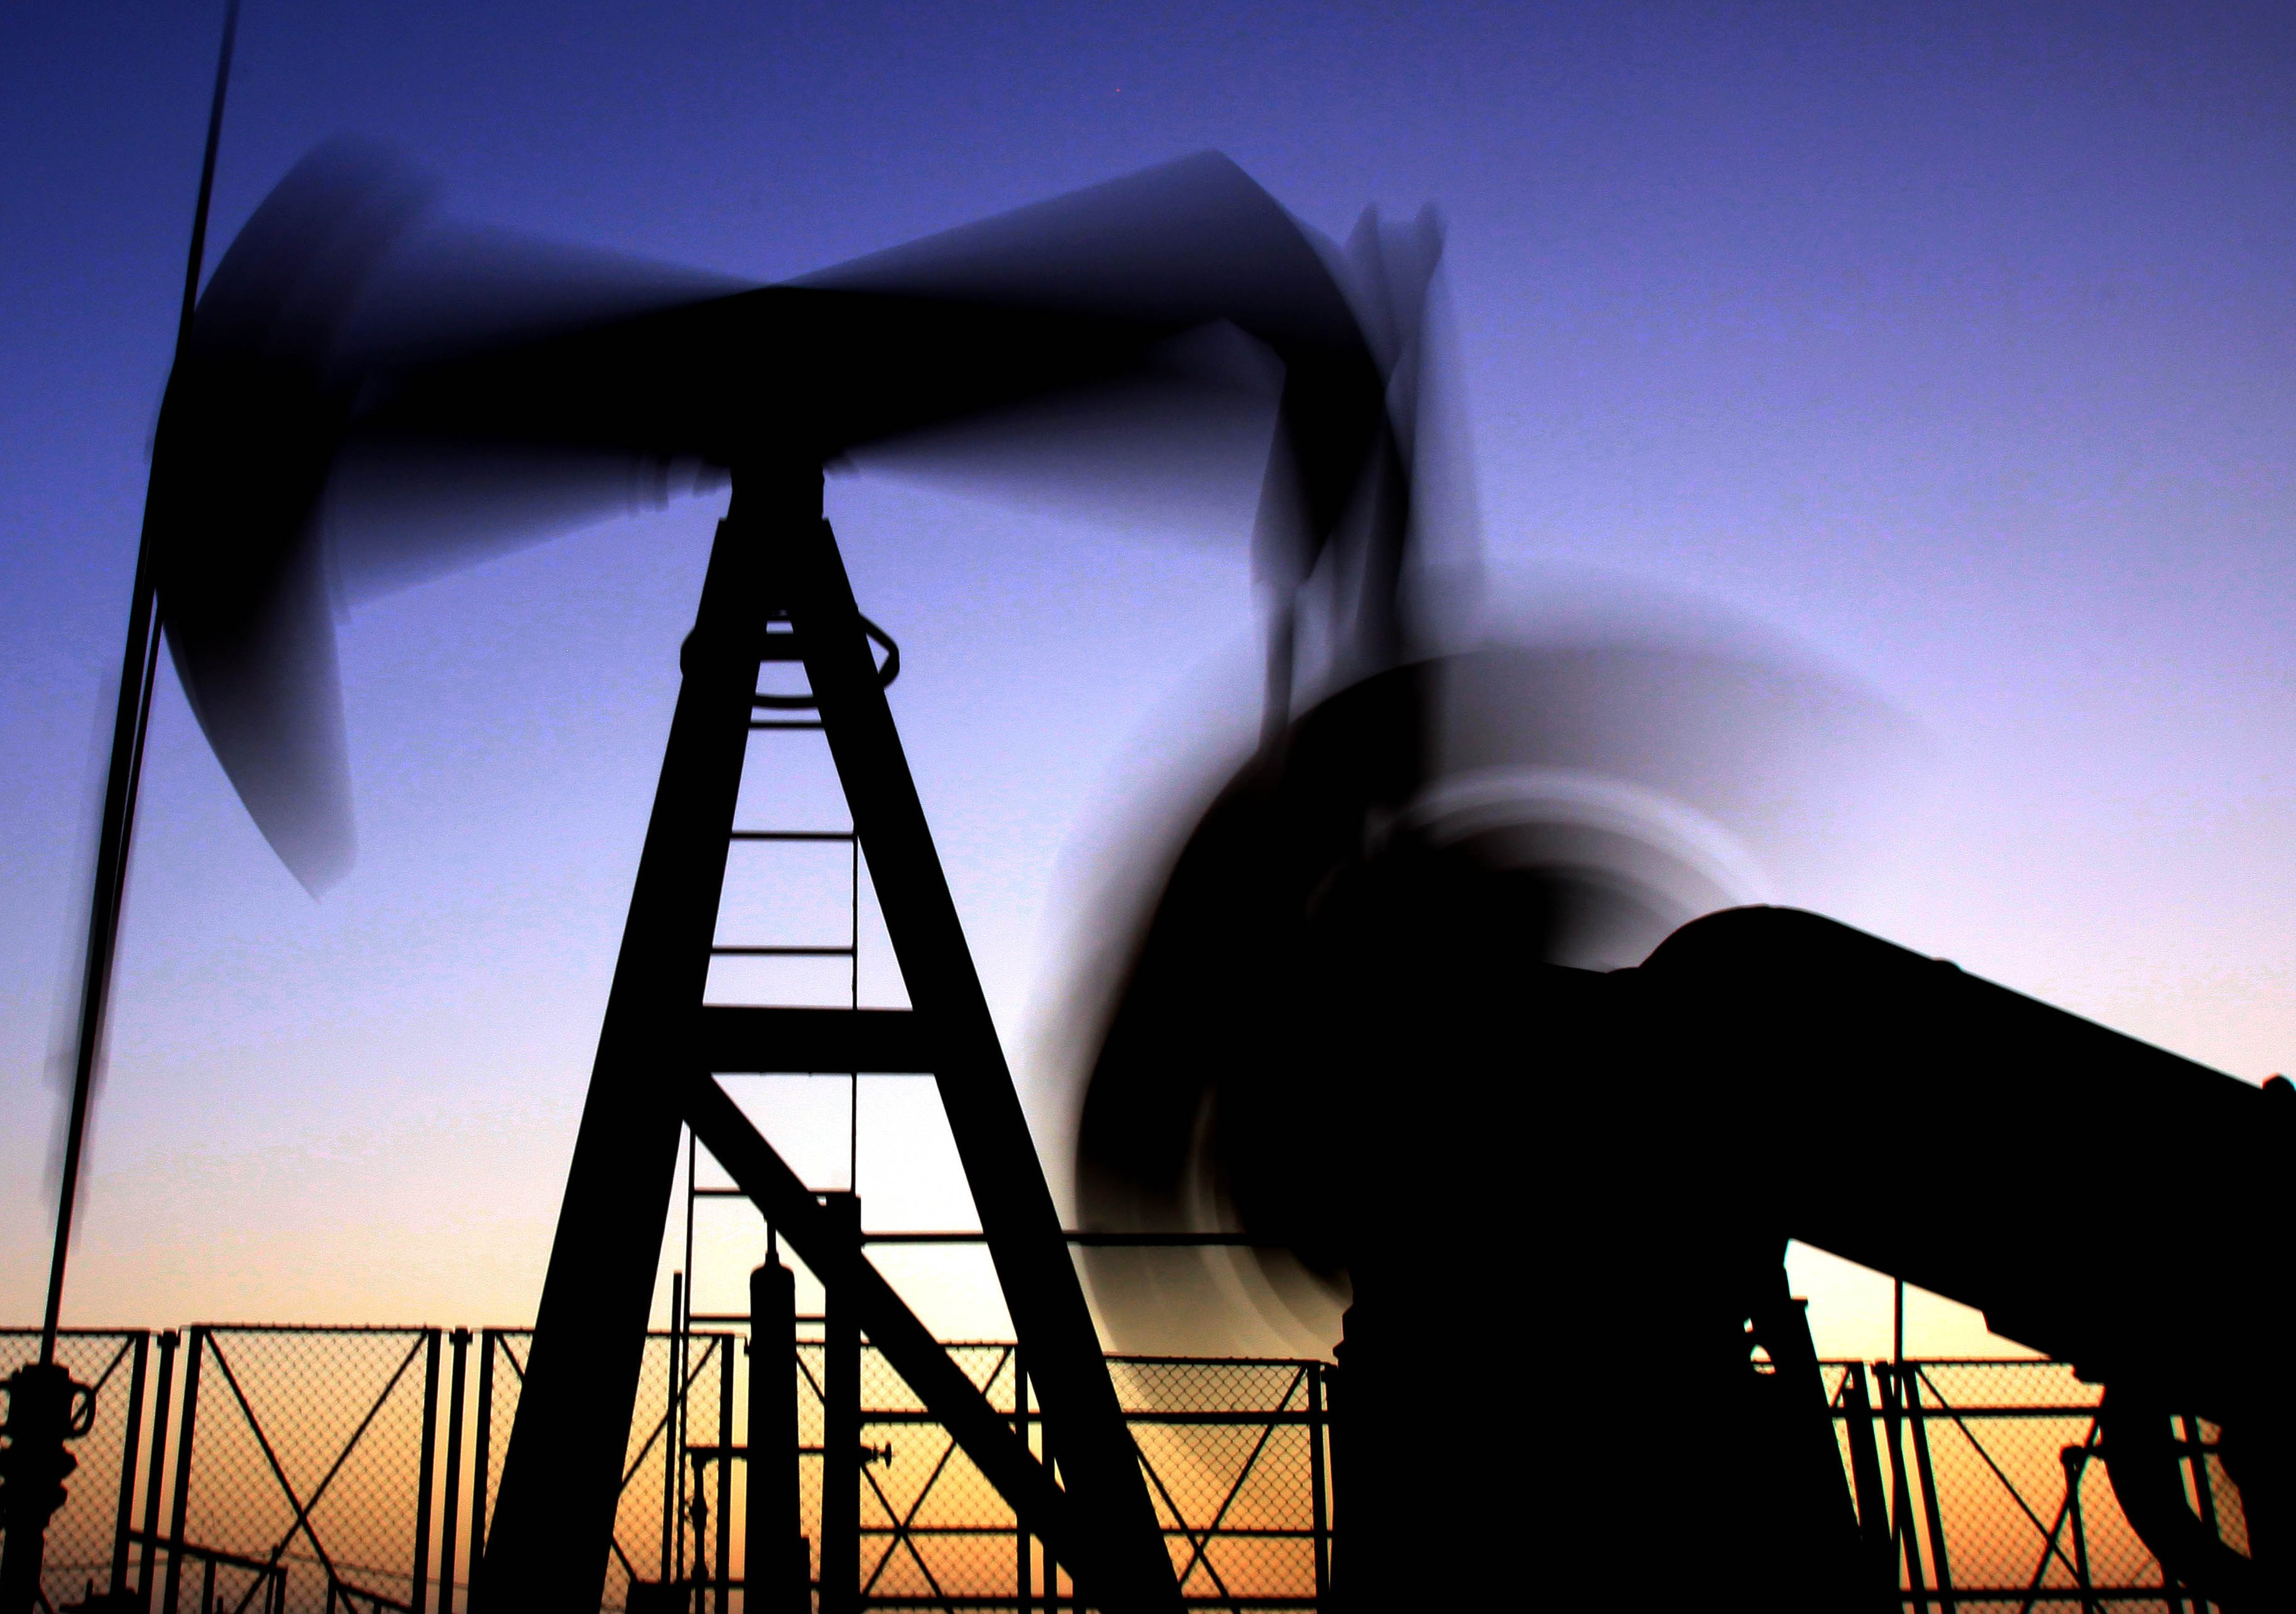 In this May 29, 2009 file photo, an oil rig works in the desert oil field of Sakhir, Bahrain. Crude oil followed the stock market up on Tuesday, Jan. 19, 2010, settling higher for the first time in five sessions.